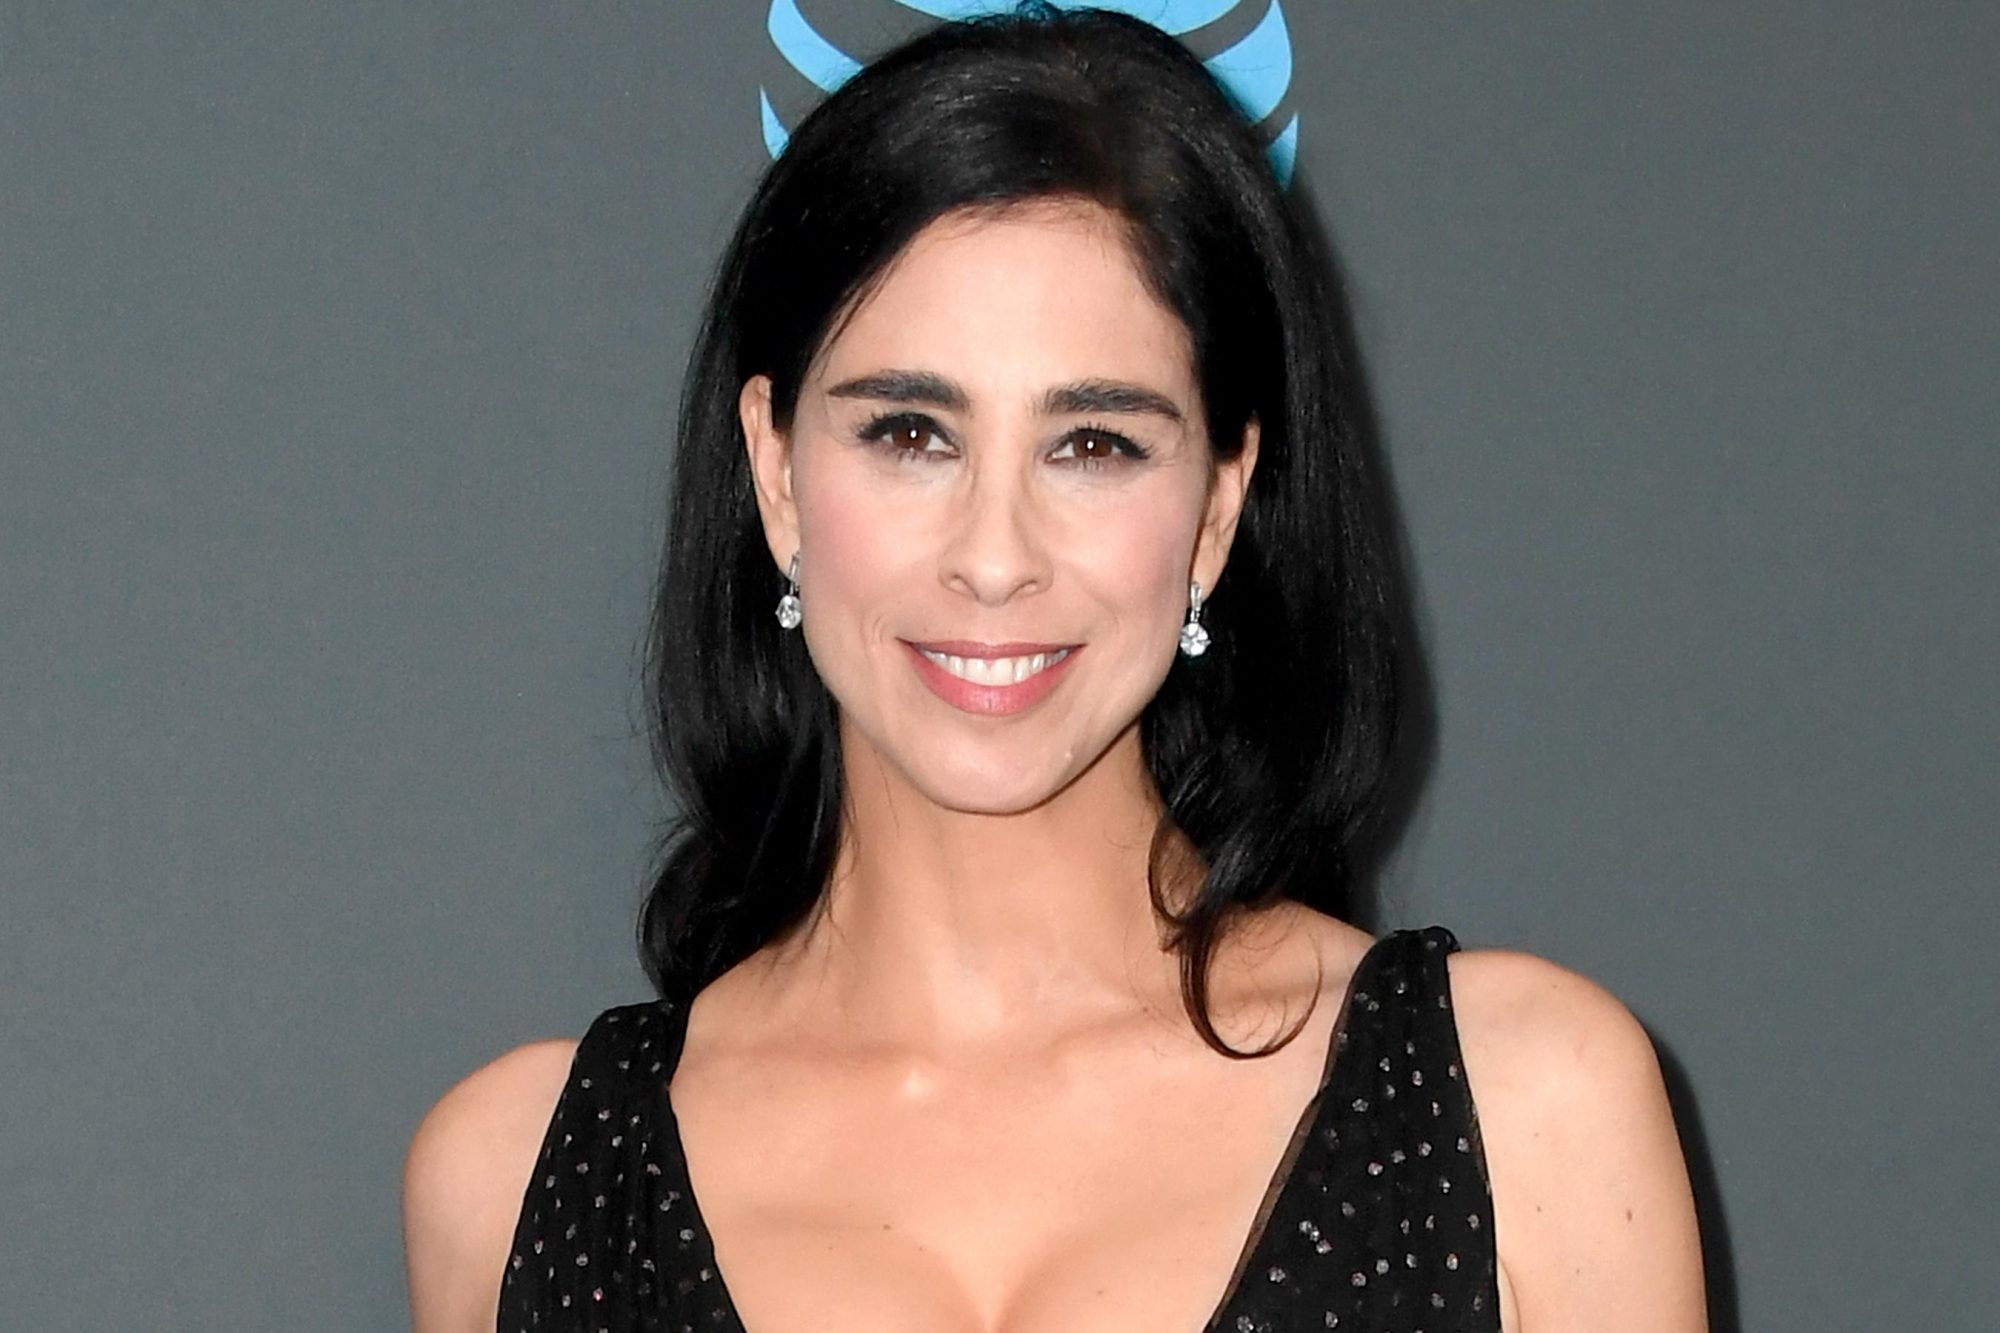 SANTA MONICA, CA - JANUARY 13: Sarah Silverman poses in the press room during the 24th annual Critics' Choice Awards at Barker Hangar on January 13, 2019 in Santa Monica, California. (Photo by Frazer Harrison/Getty Images)